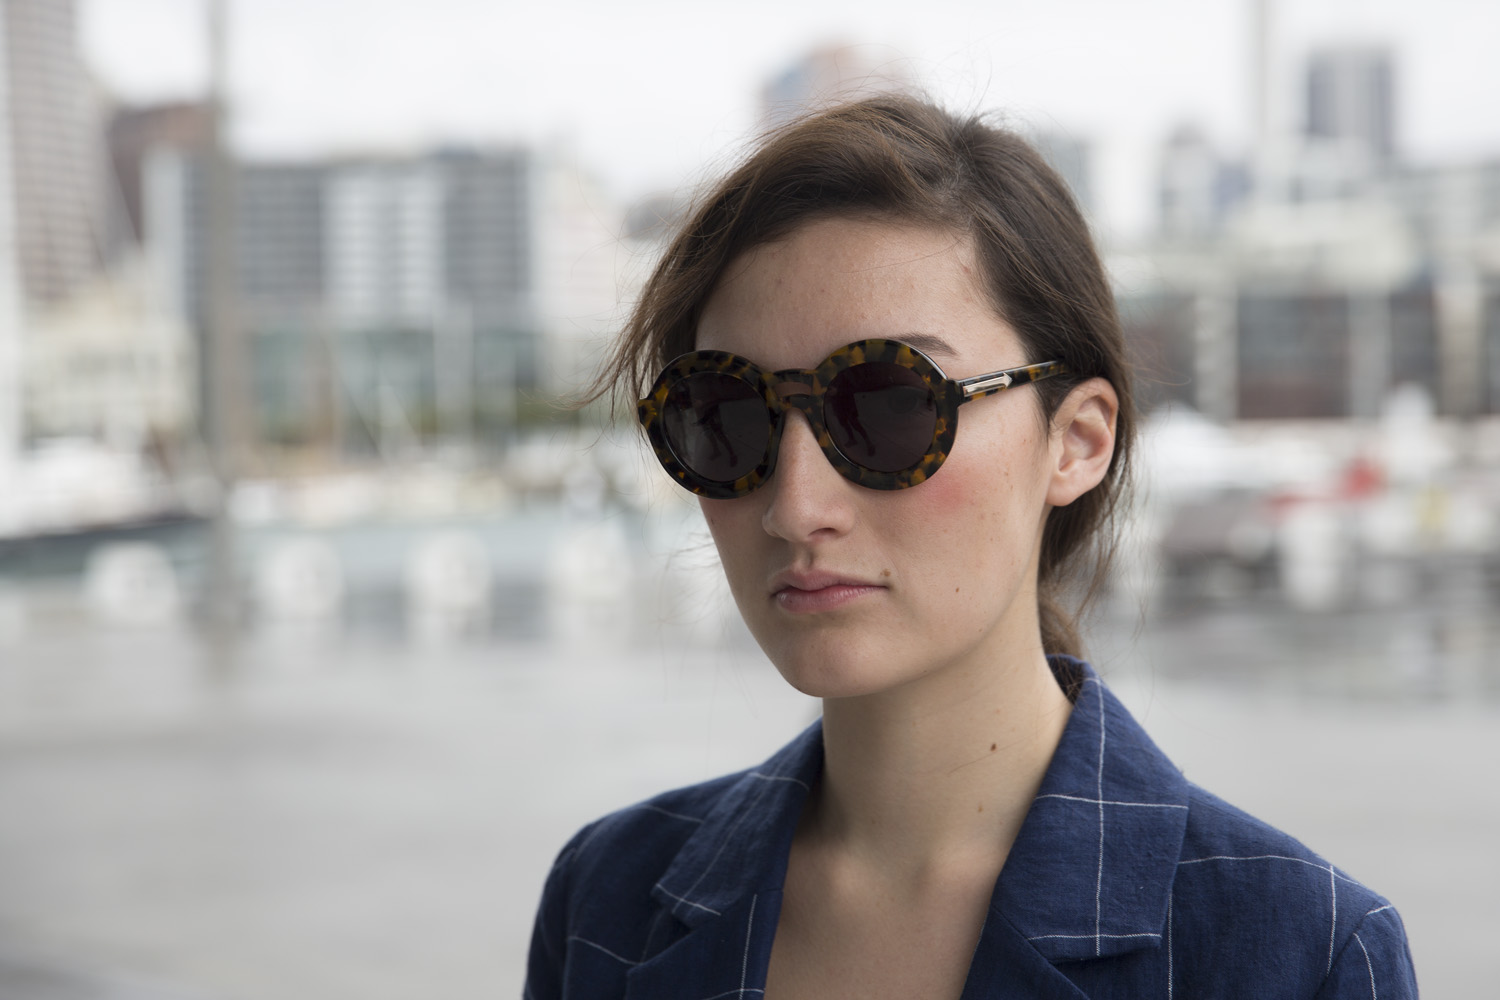 Maddy wears Karen Walker sunglasses and culottes, Miss Crabb top, Twenty-Seven Names jacket and Ruby shoes.